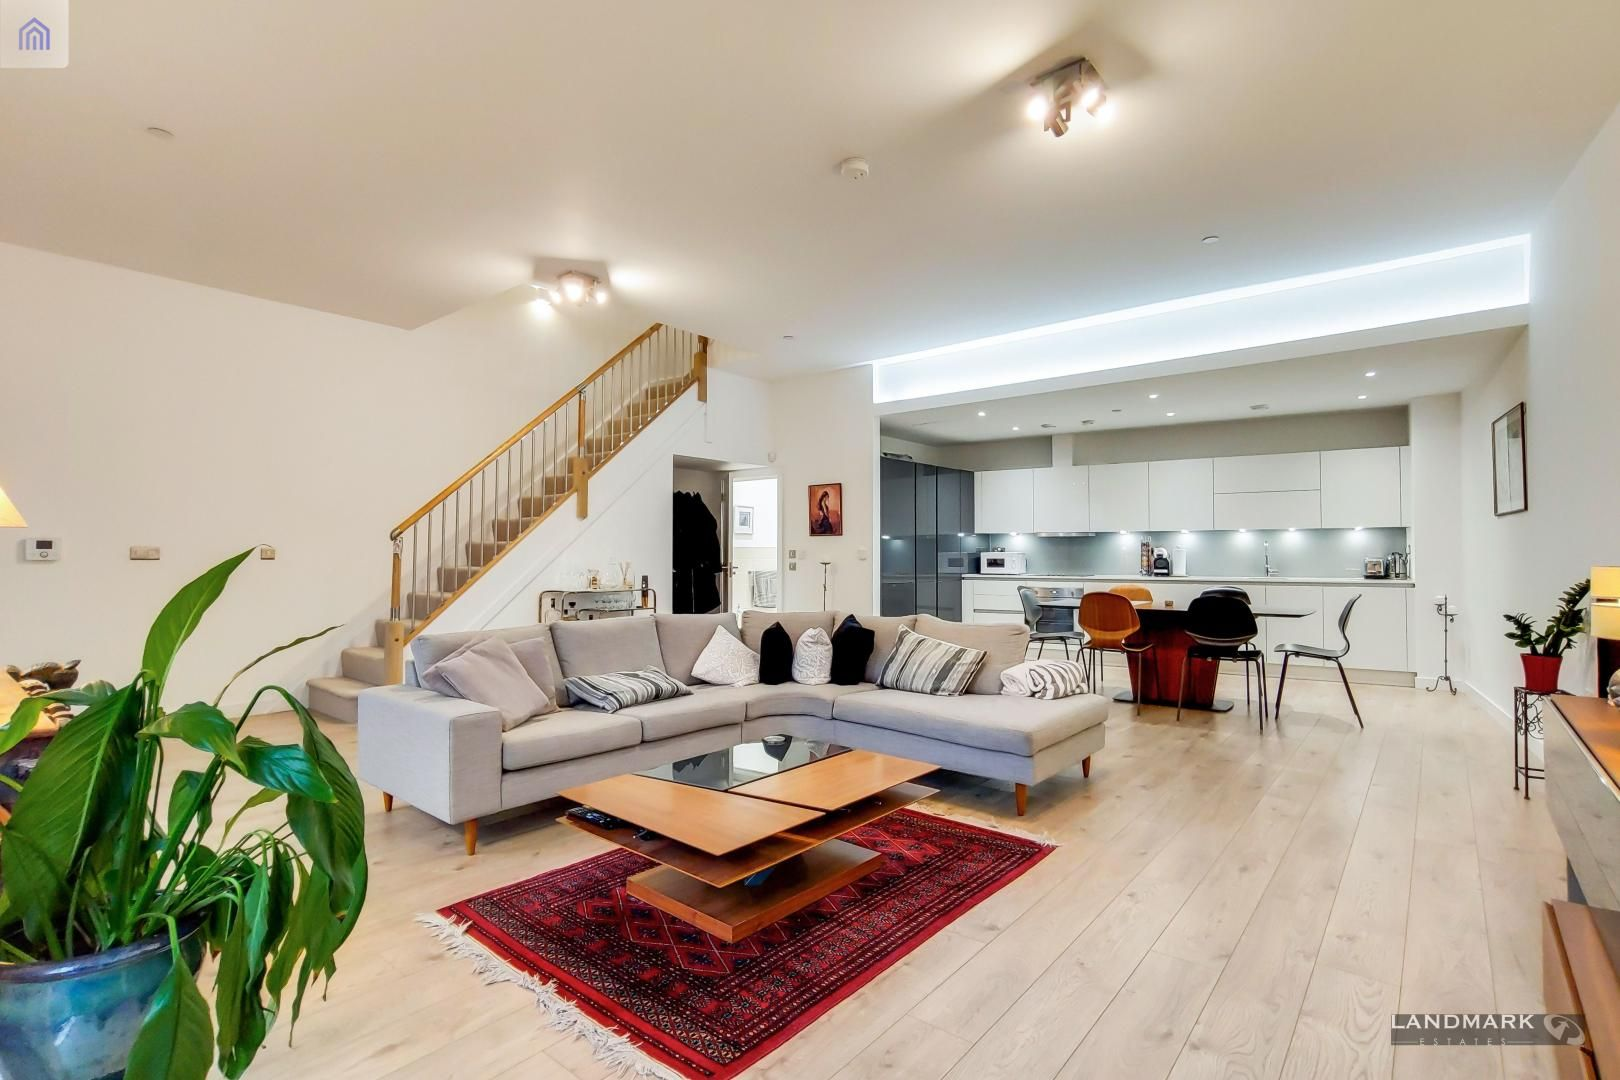 3 bed house for sale in Williamsburg Plaza - Property Image 1